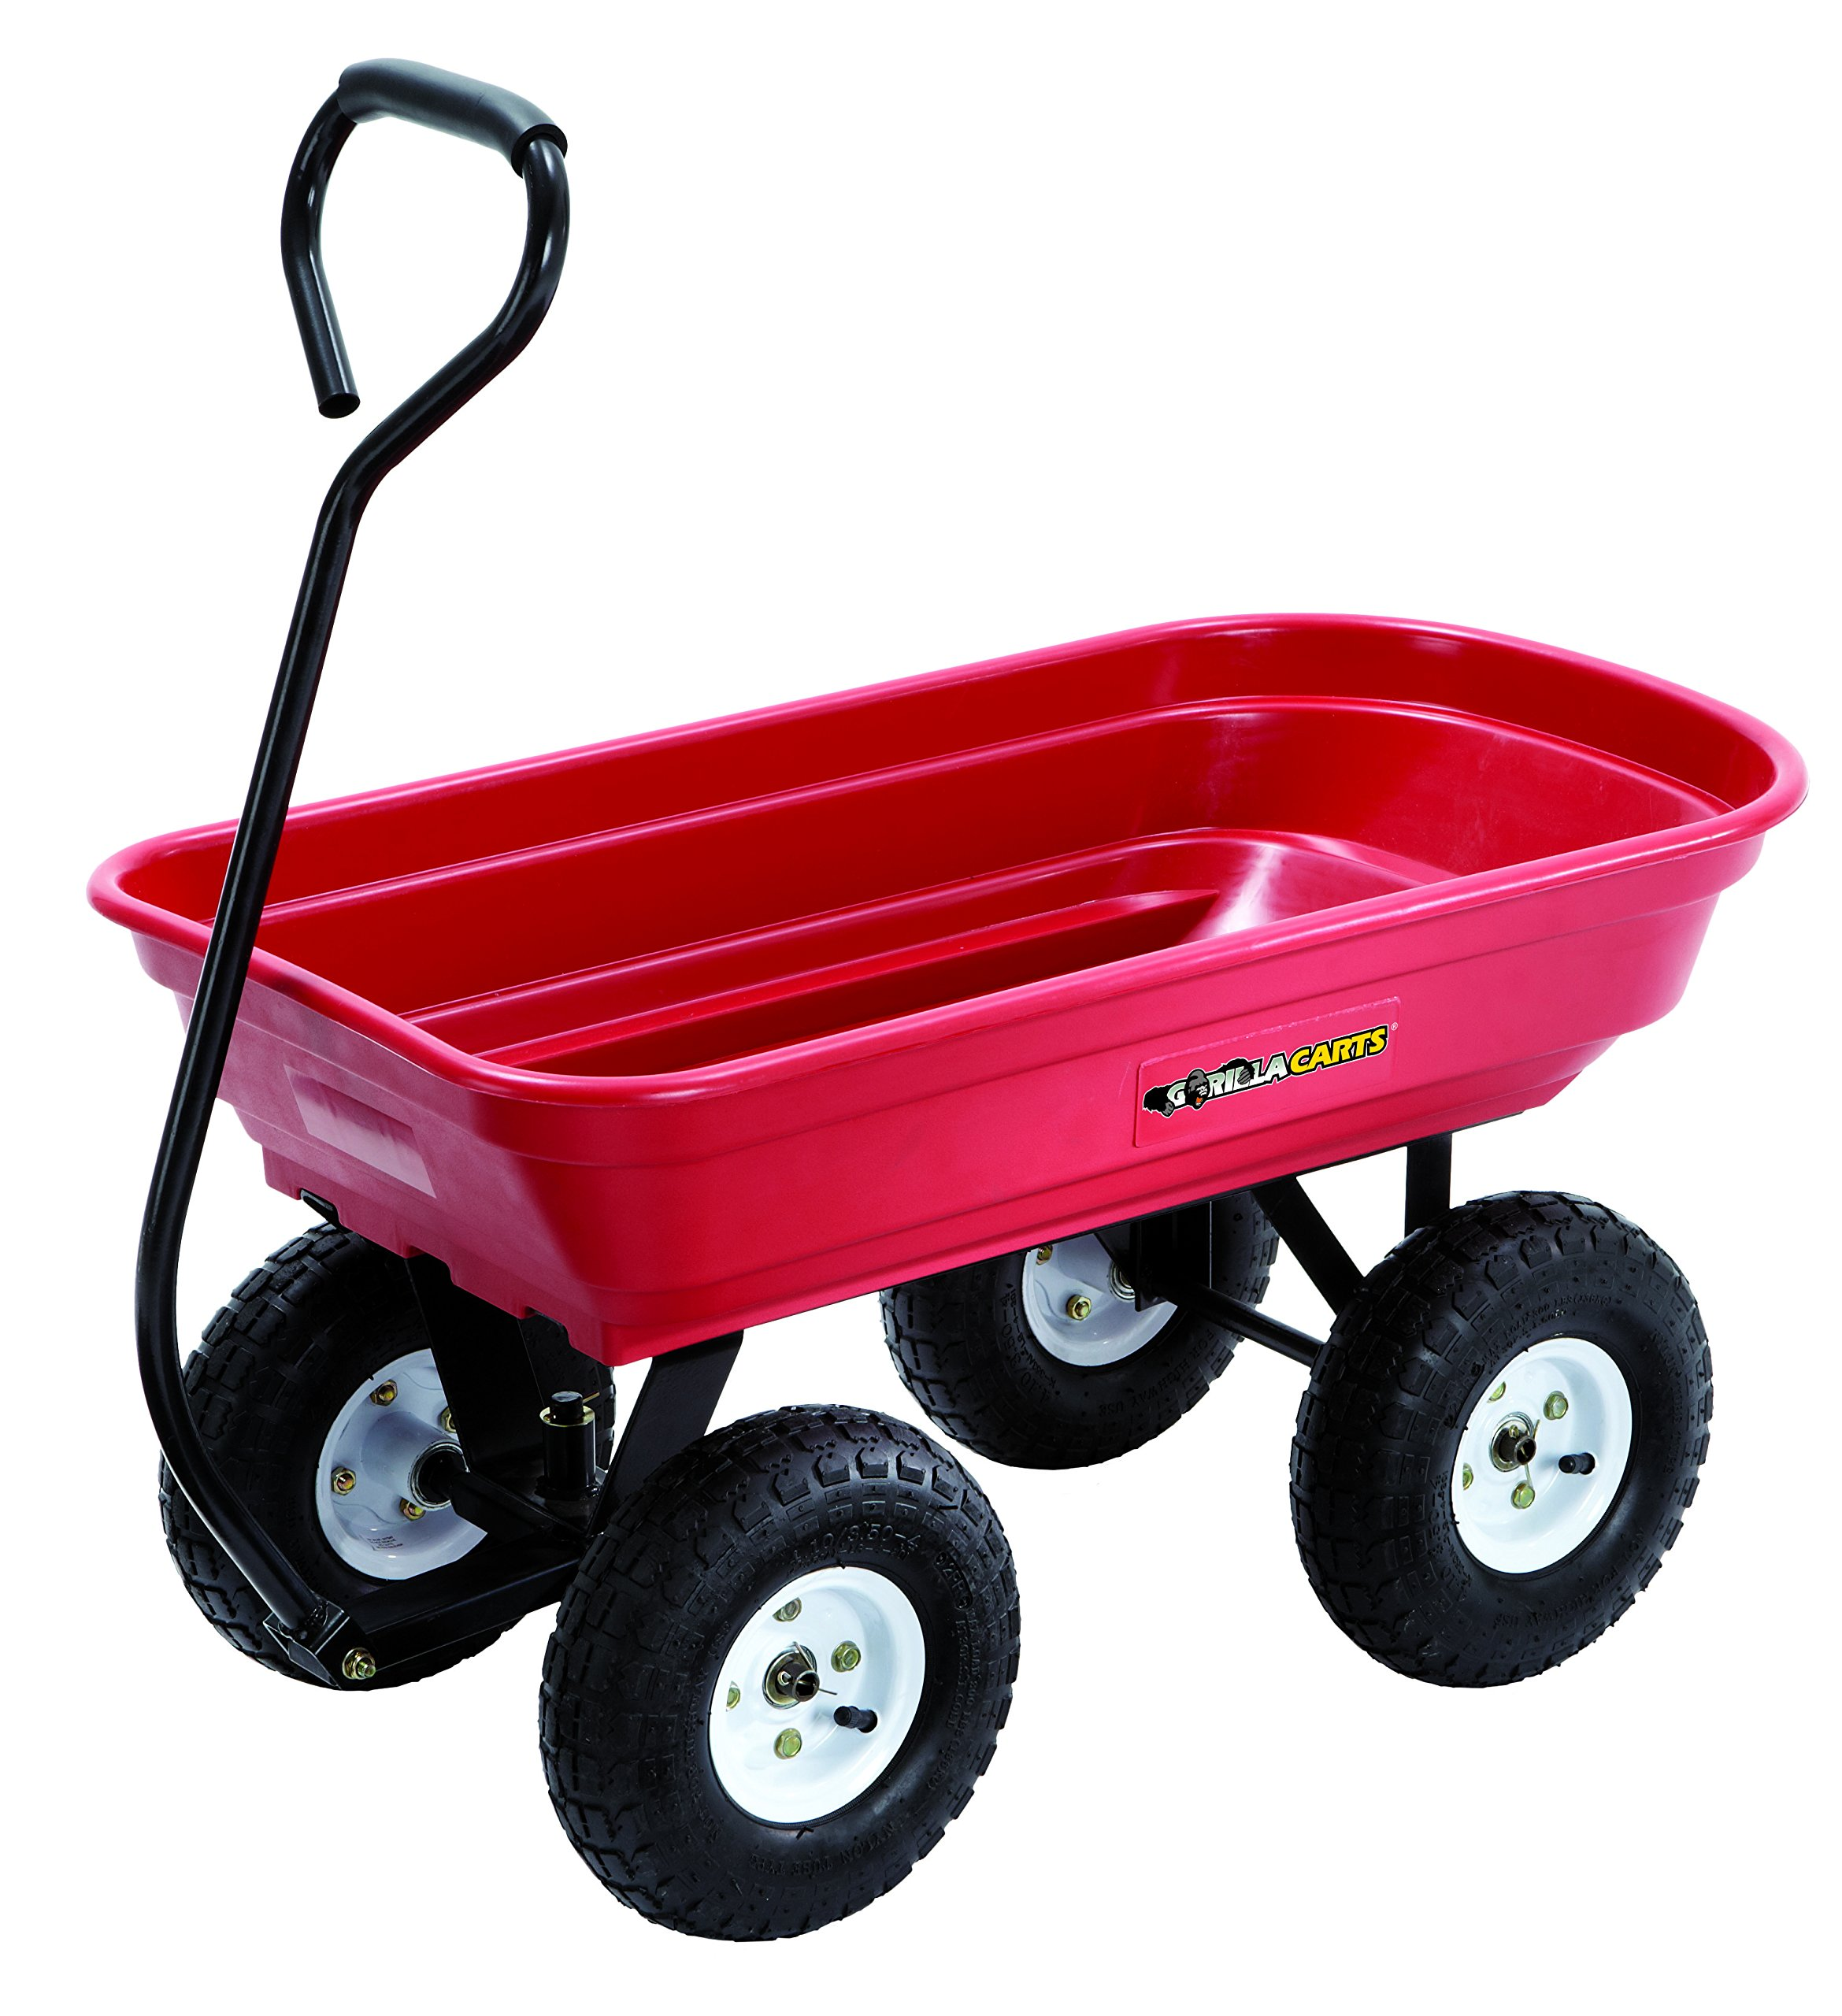 Gorilla Cart GOR100-14 Poly Garden Cart with Curved Handle, 400-Pound Capacity, 34.25-Inch by 18-Inch Bed, Red Finish